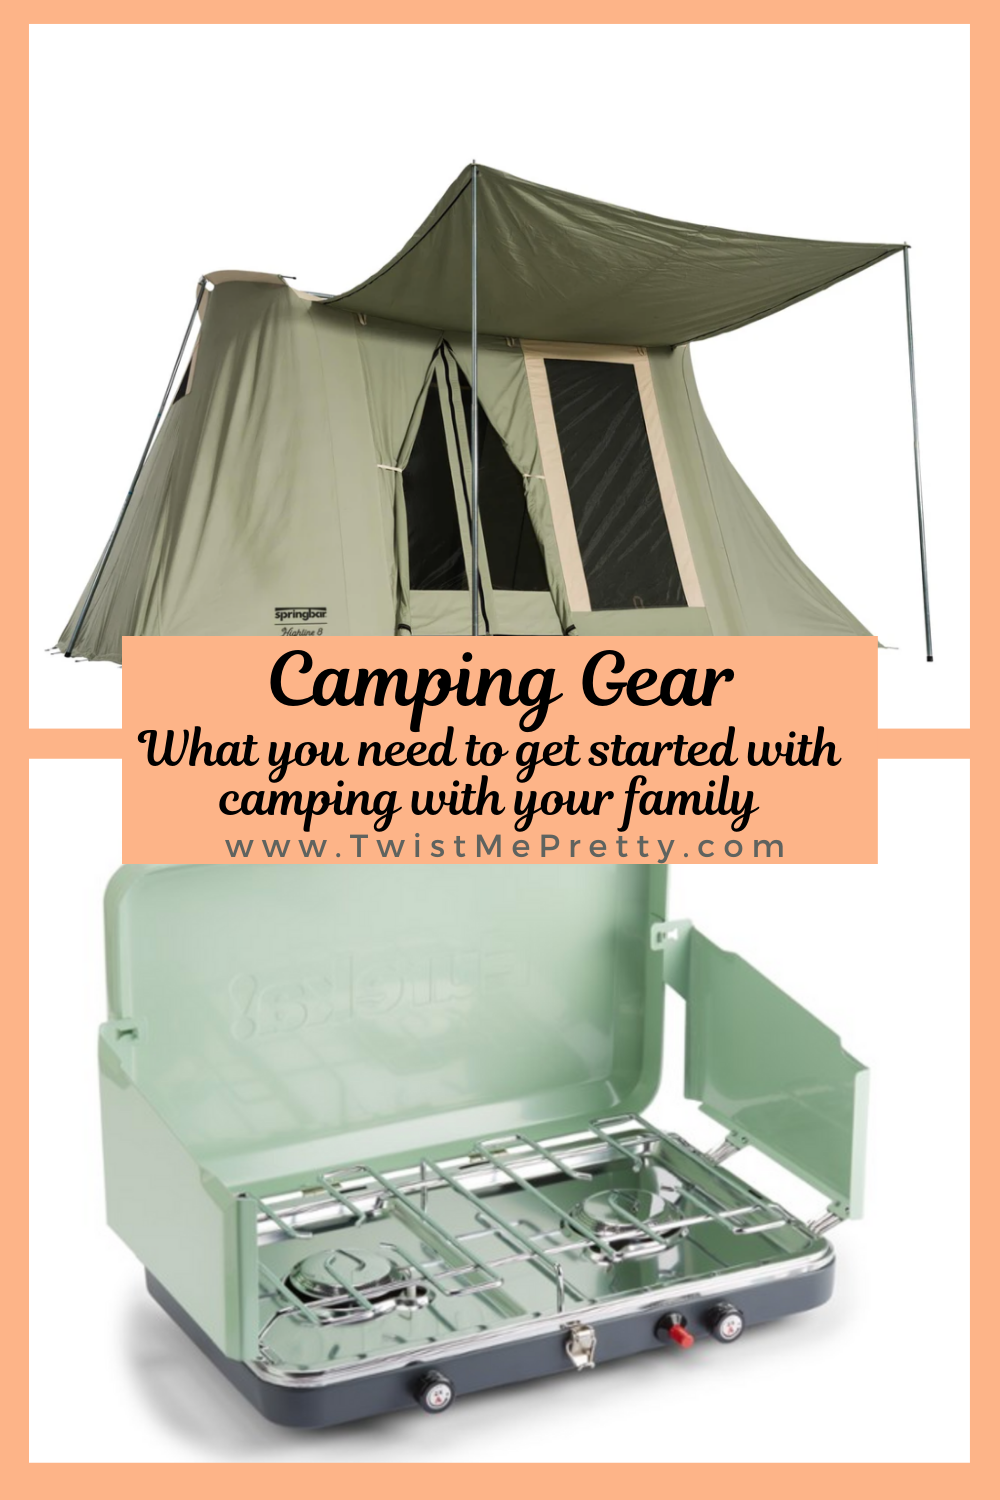 Camping Gear: What you need to get started with camping with your family. www.twistmepretty.com